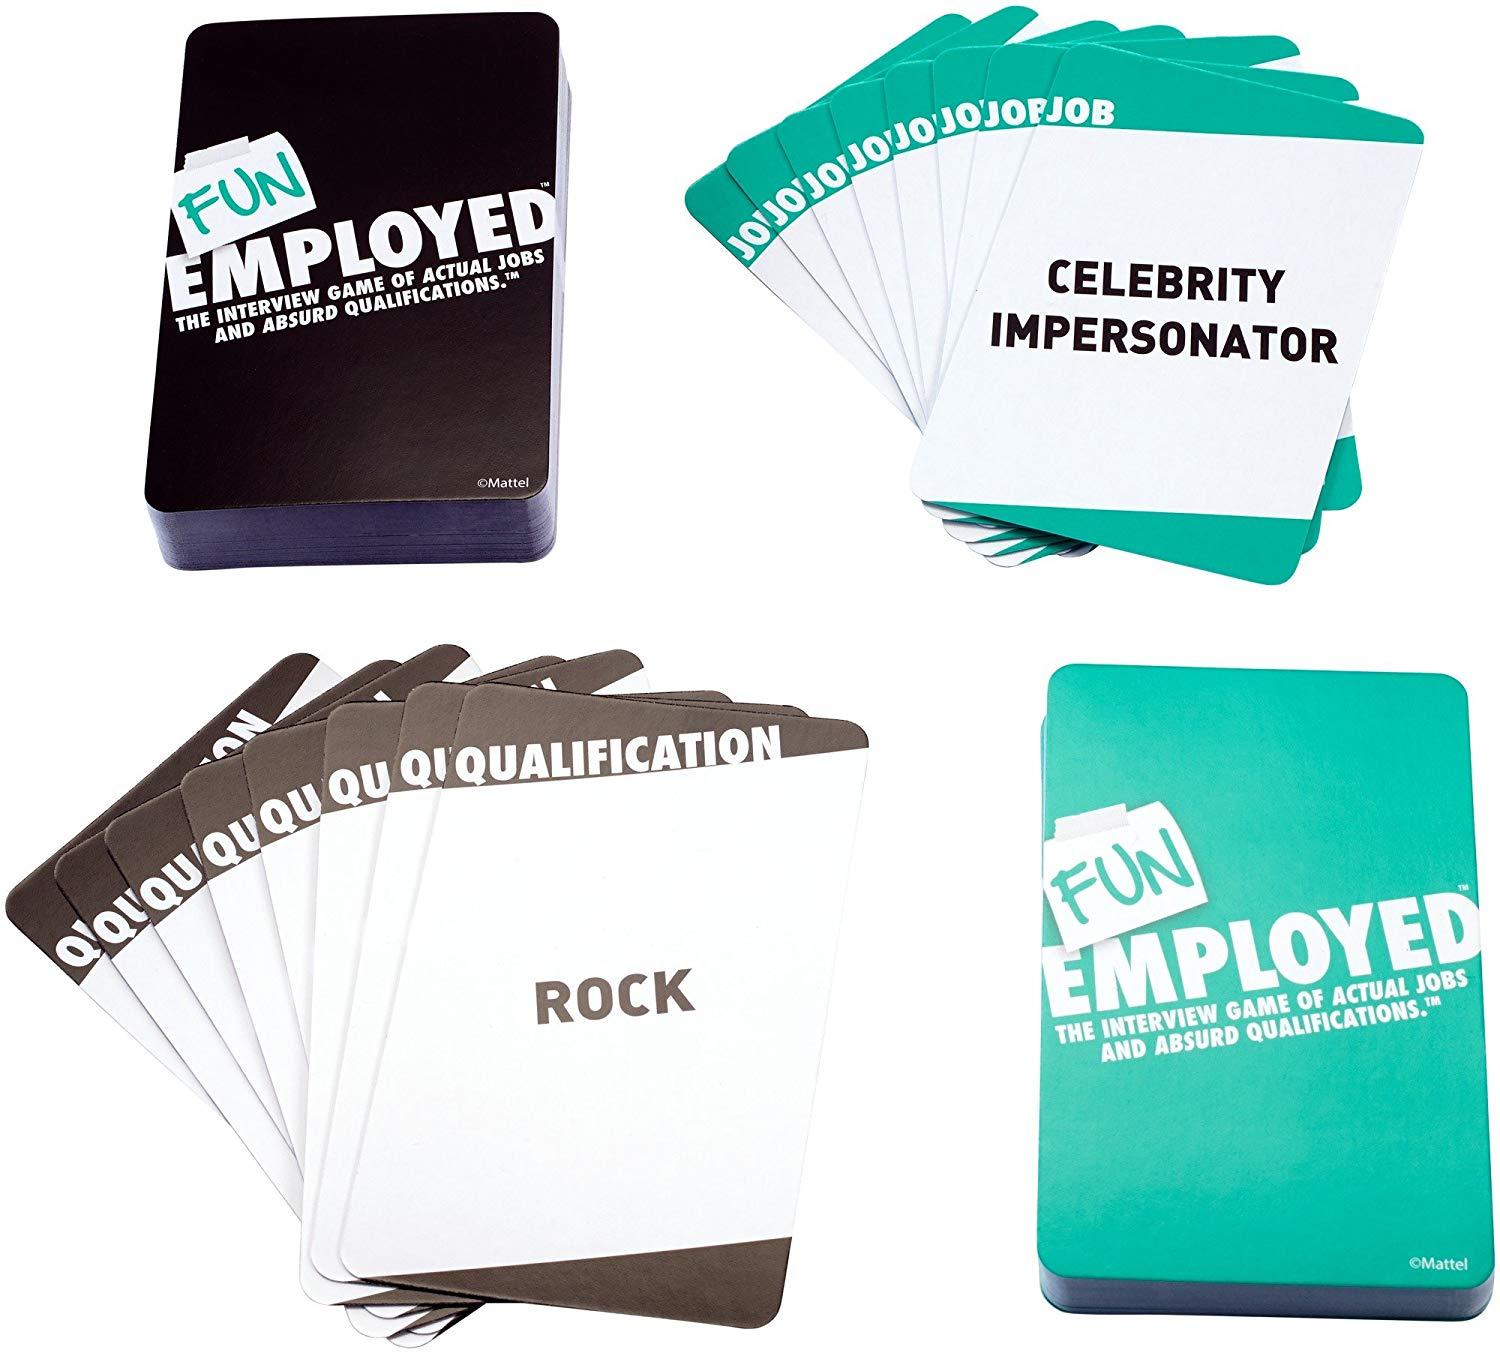 Cool affordable gifts under $15: Funemployed card game